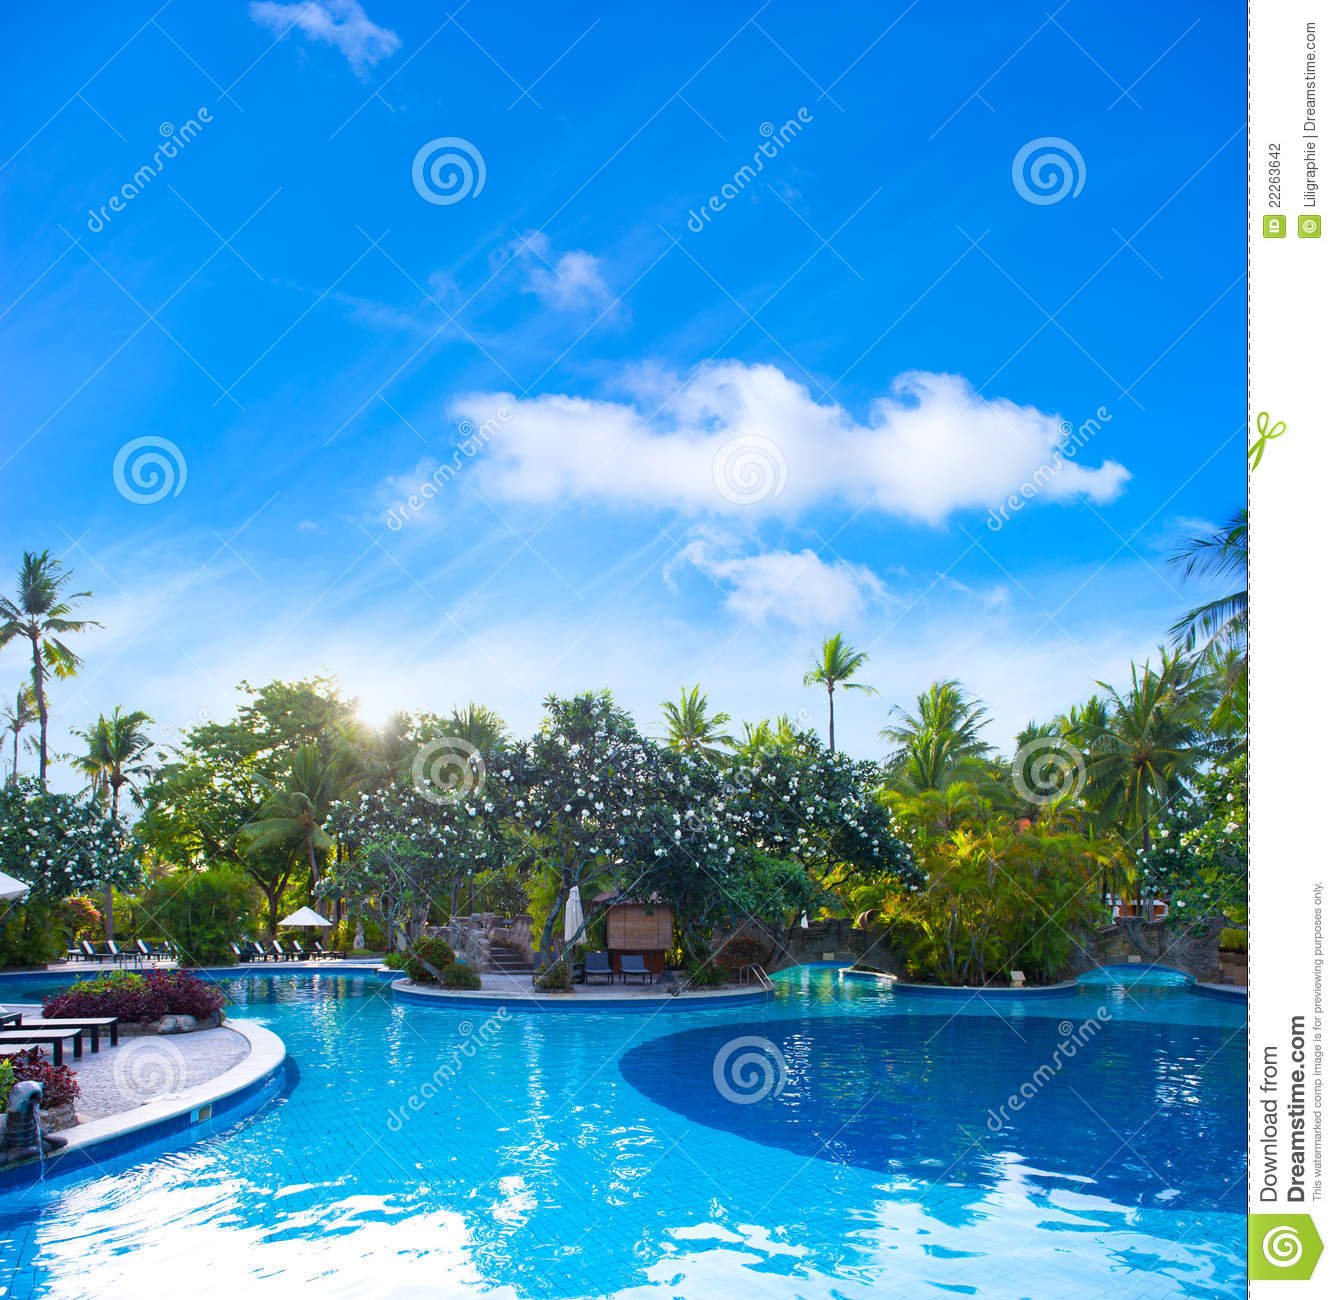 Swimming Pool Plants: Swimming Pool Surrounded By Tropical Plants Stock Photo